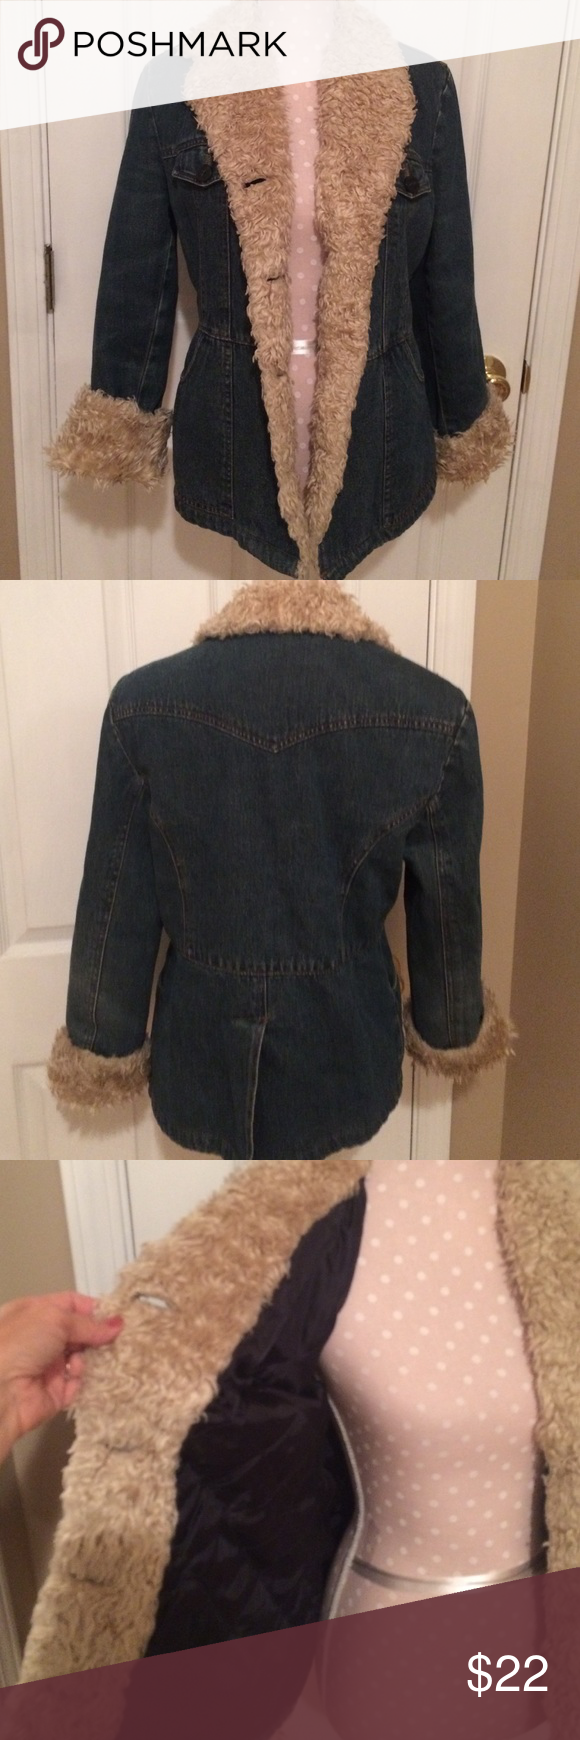 Jean jacket VERY nice jacket with a. fur look around collar and front and sleeves. Very warm and comfy. Buttons up and pockets on front too. Braeton Jackets & Coats Jean Jackets